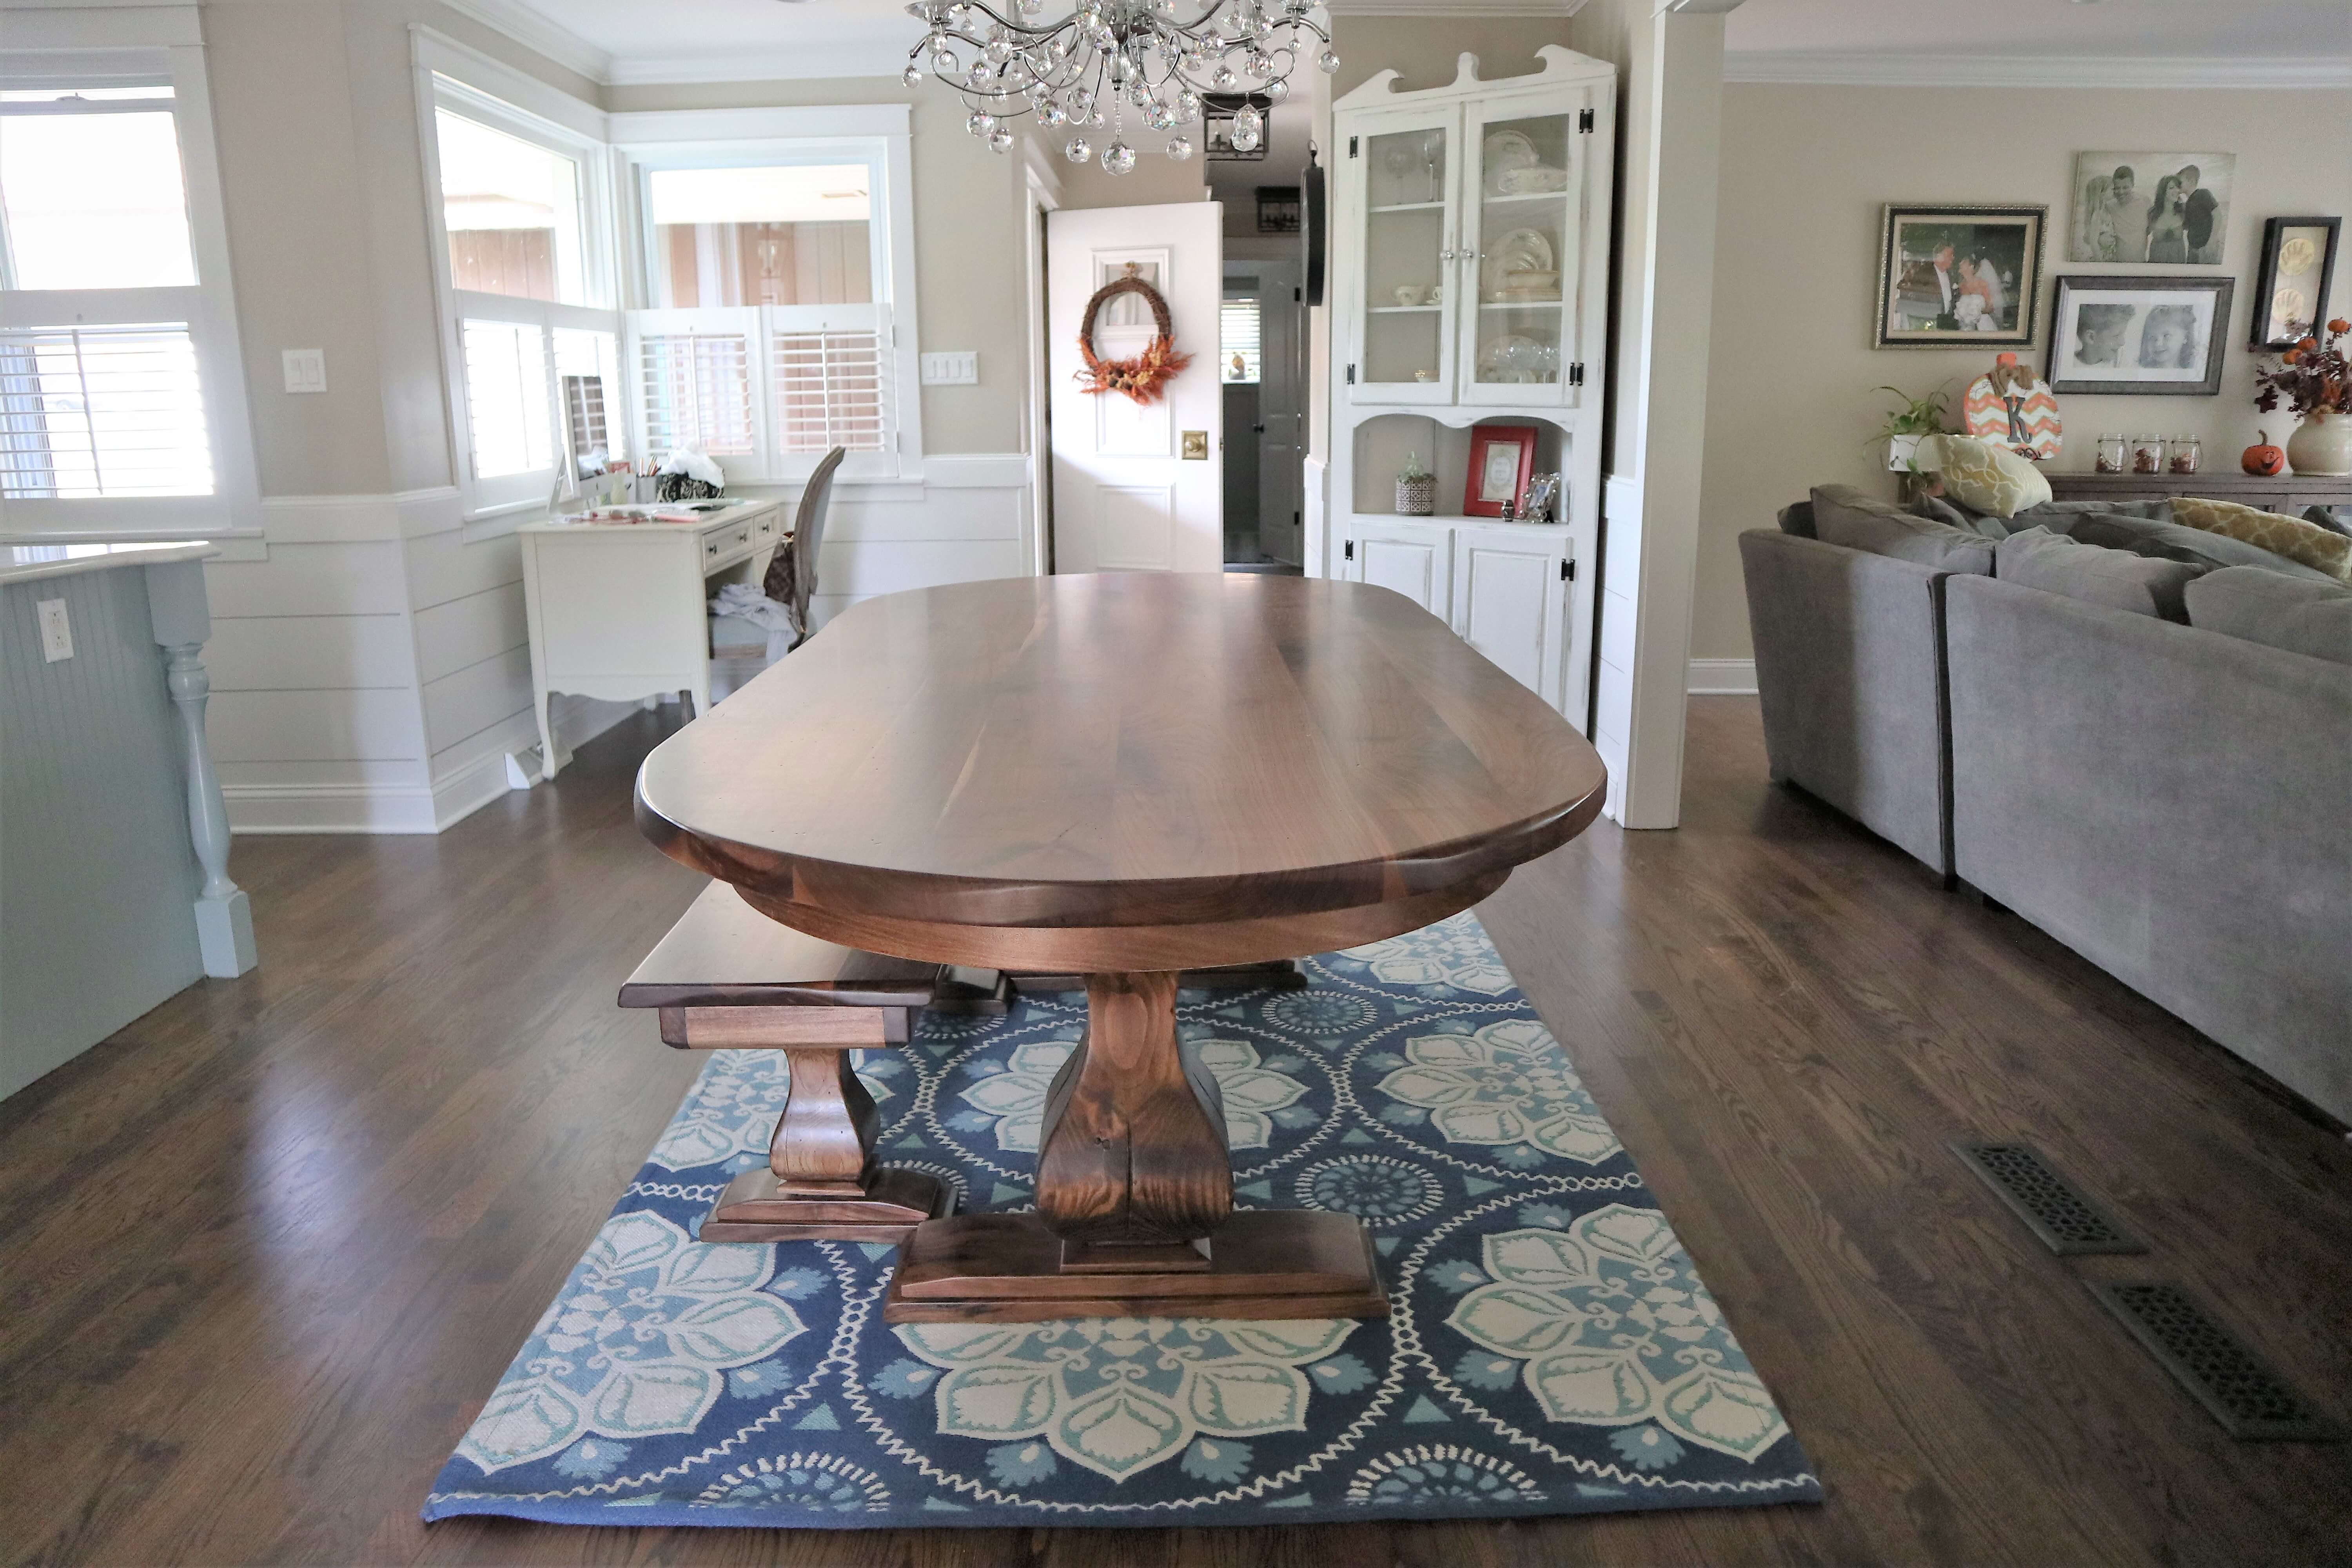 Solid walnut, oval tables with matching bench